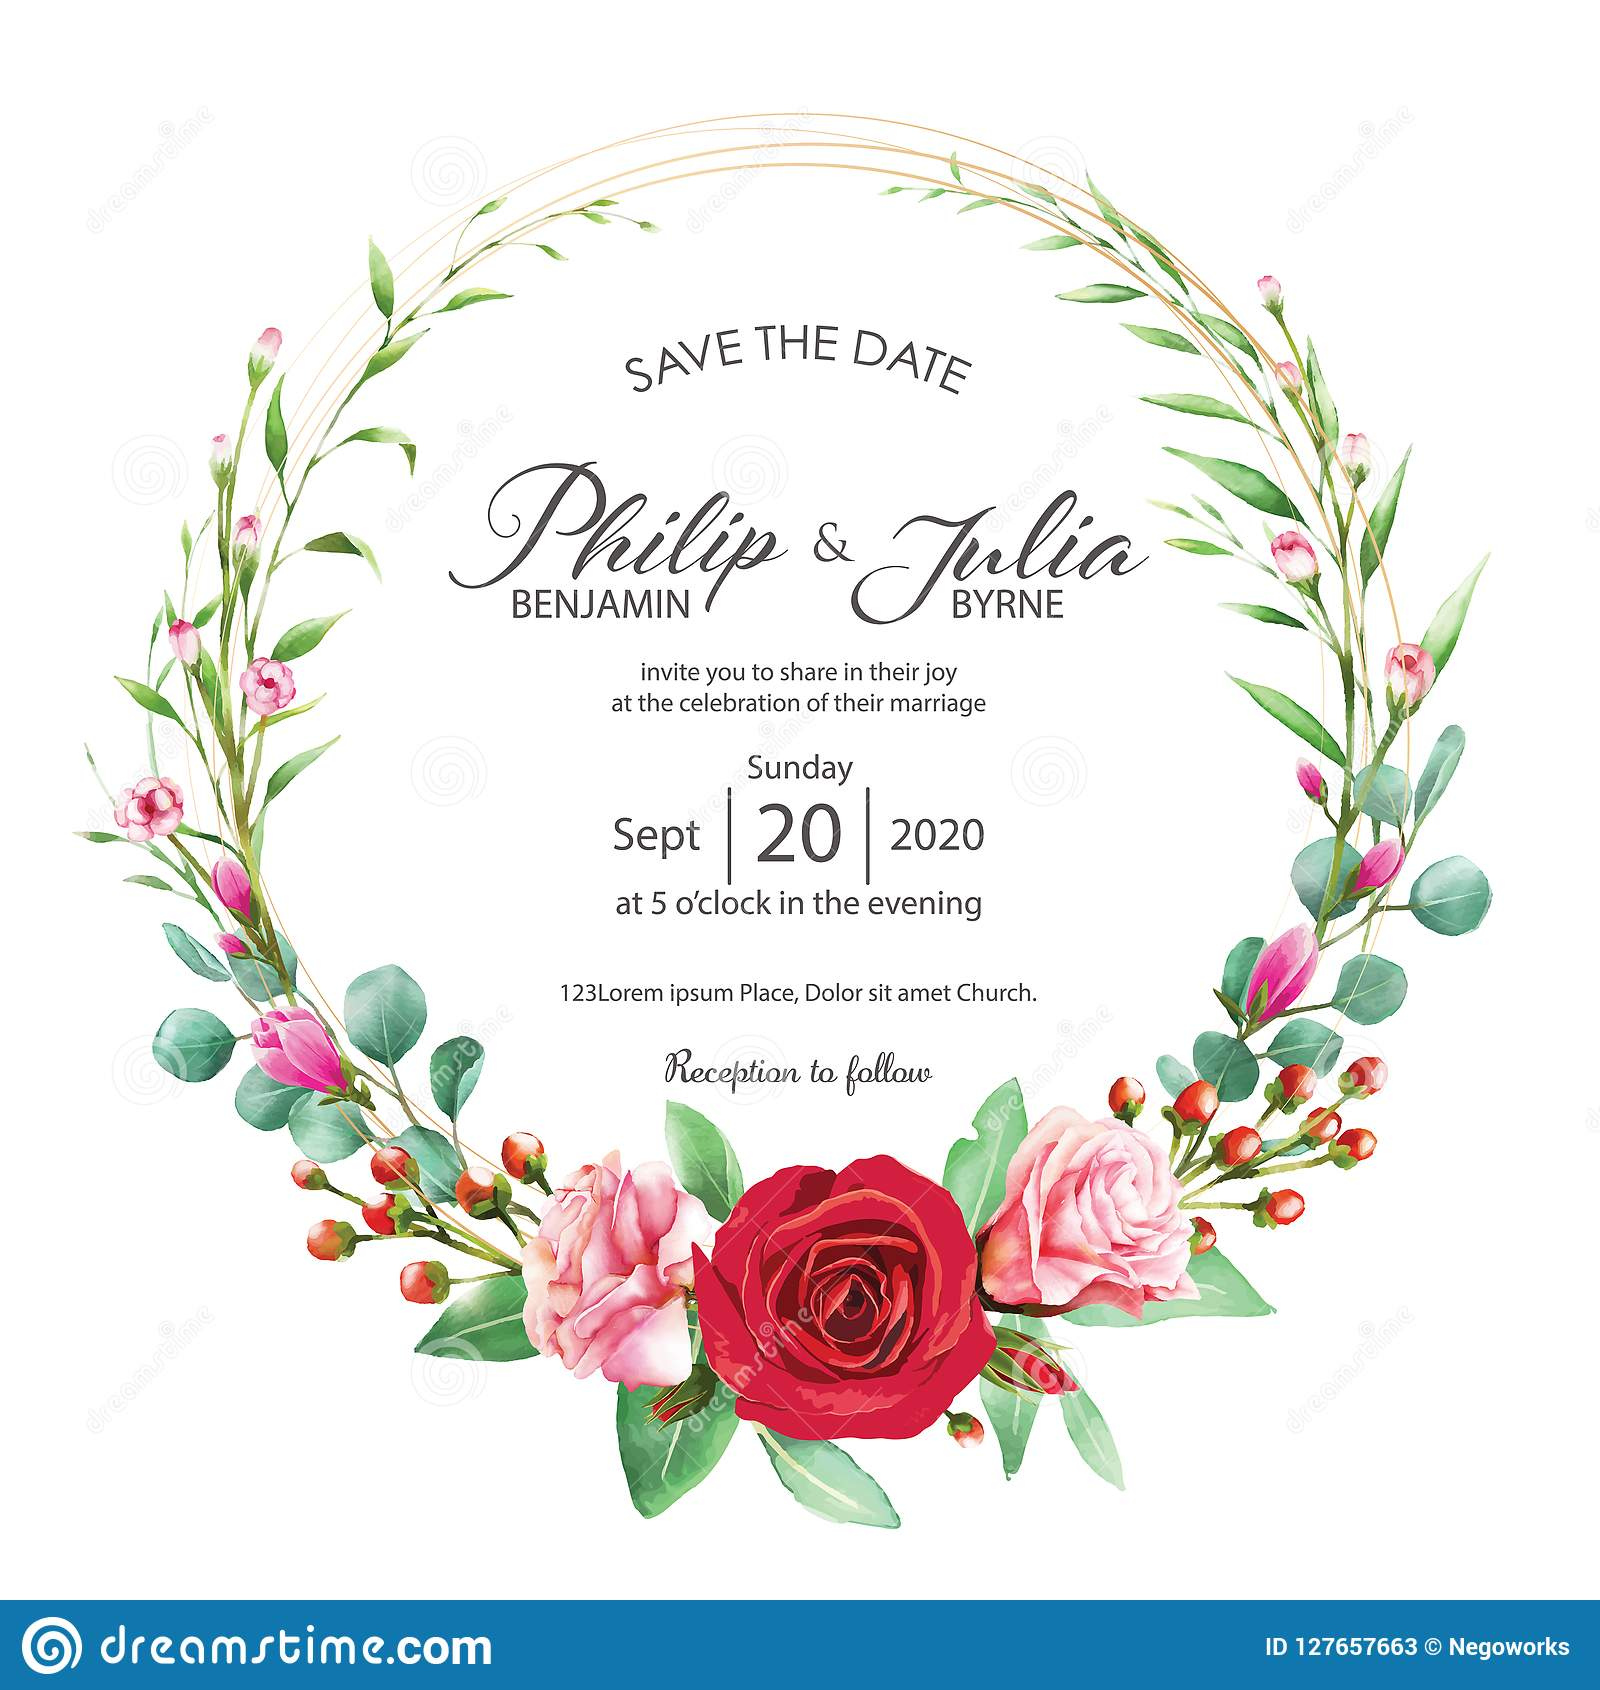 Background For Wedding Invitation: Beautiful Red And Pink Floral, Flower Wedding Invitation